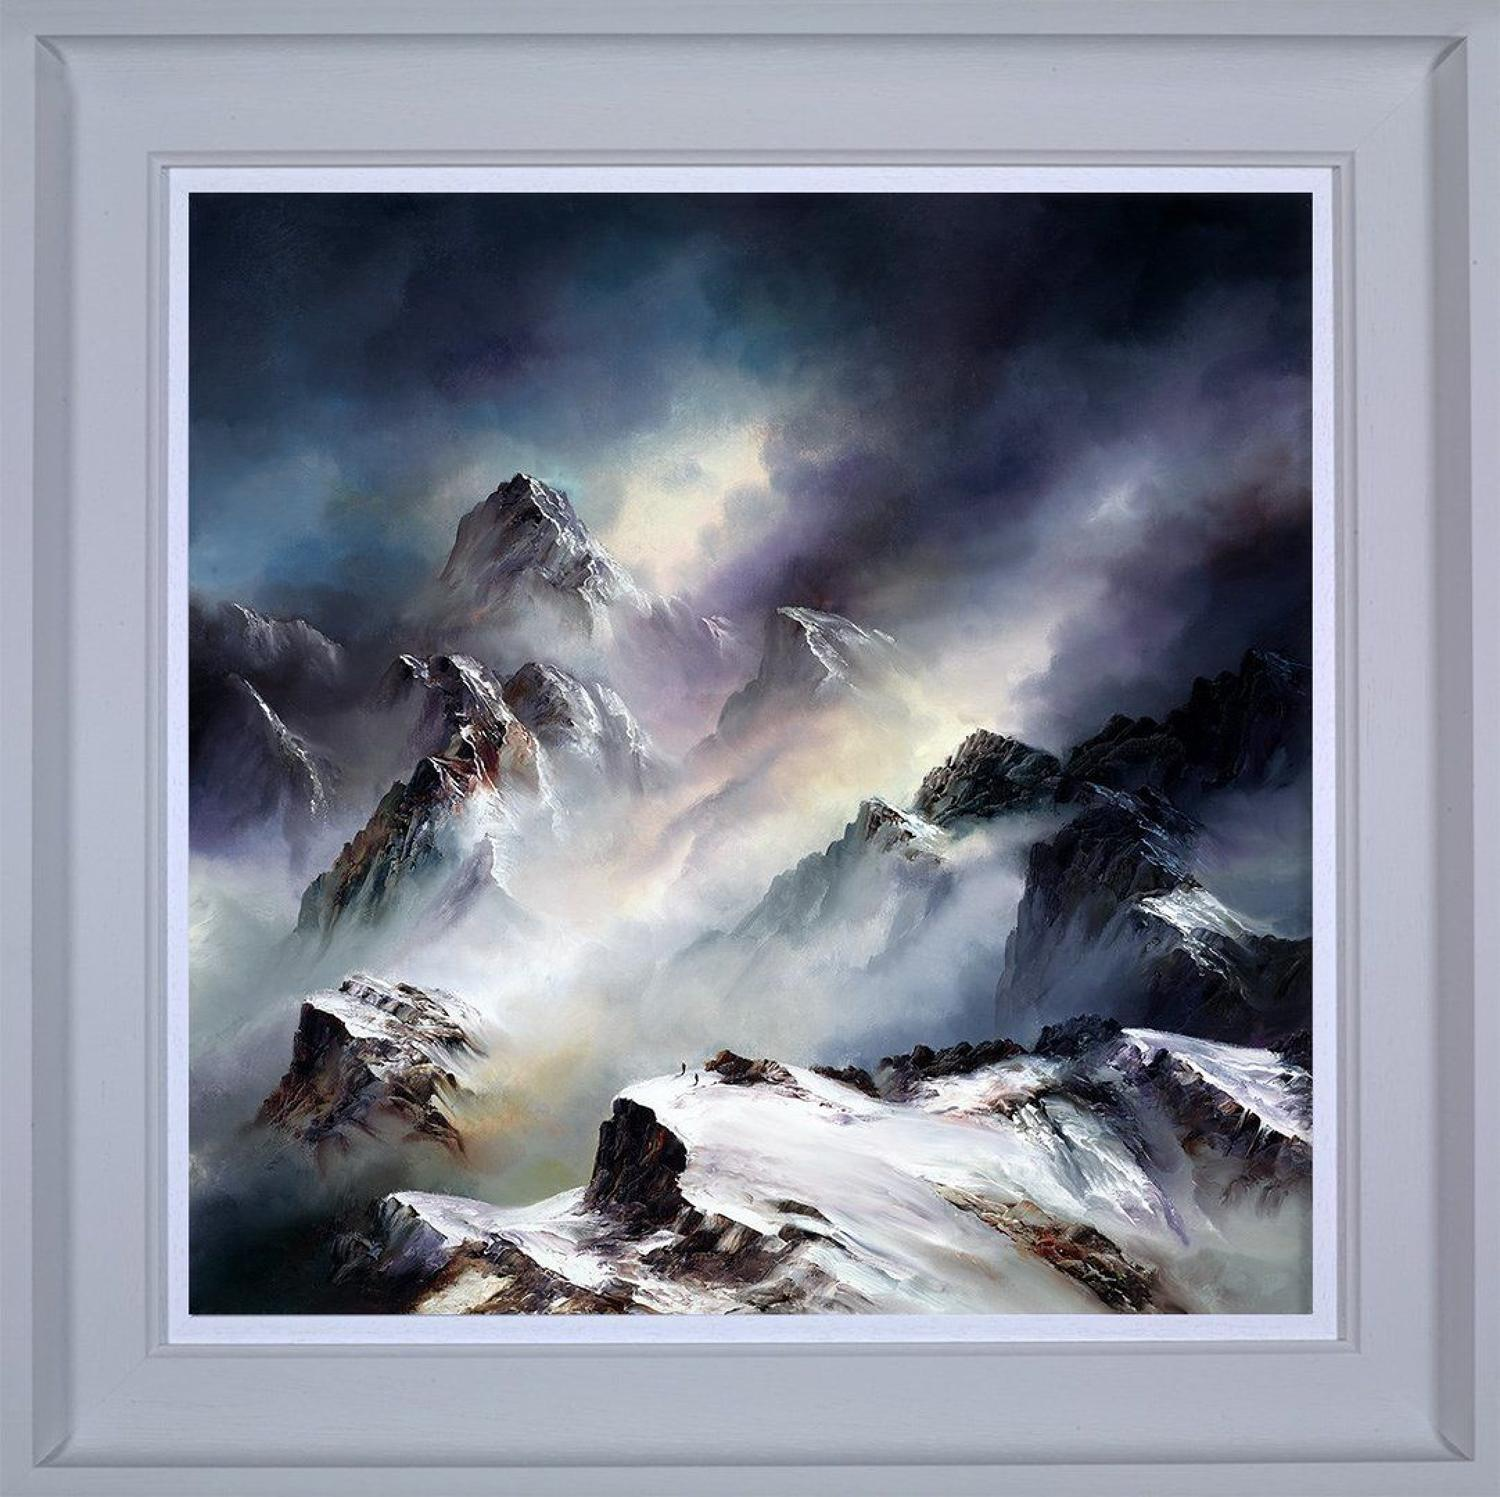 Furthest Reaches by Philip Gray Framed Art Print